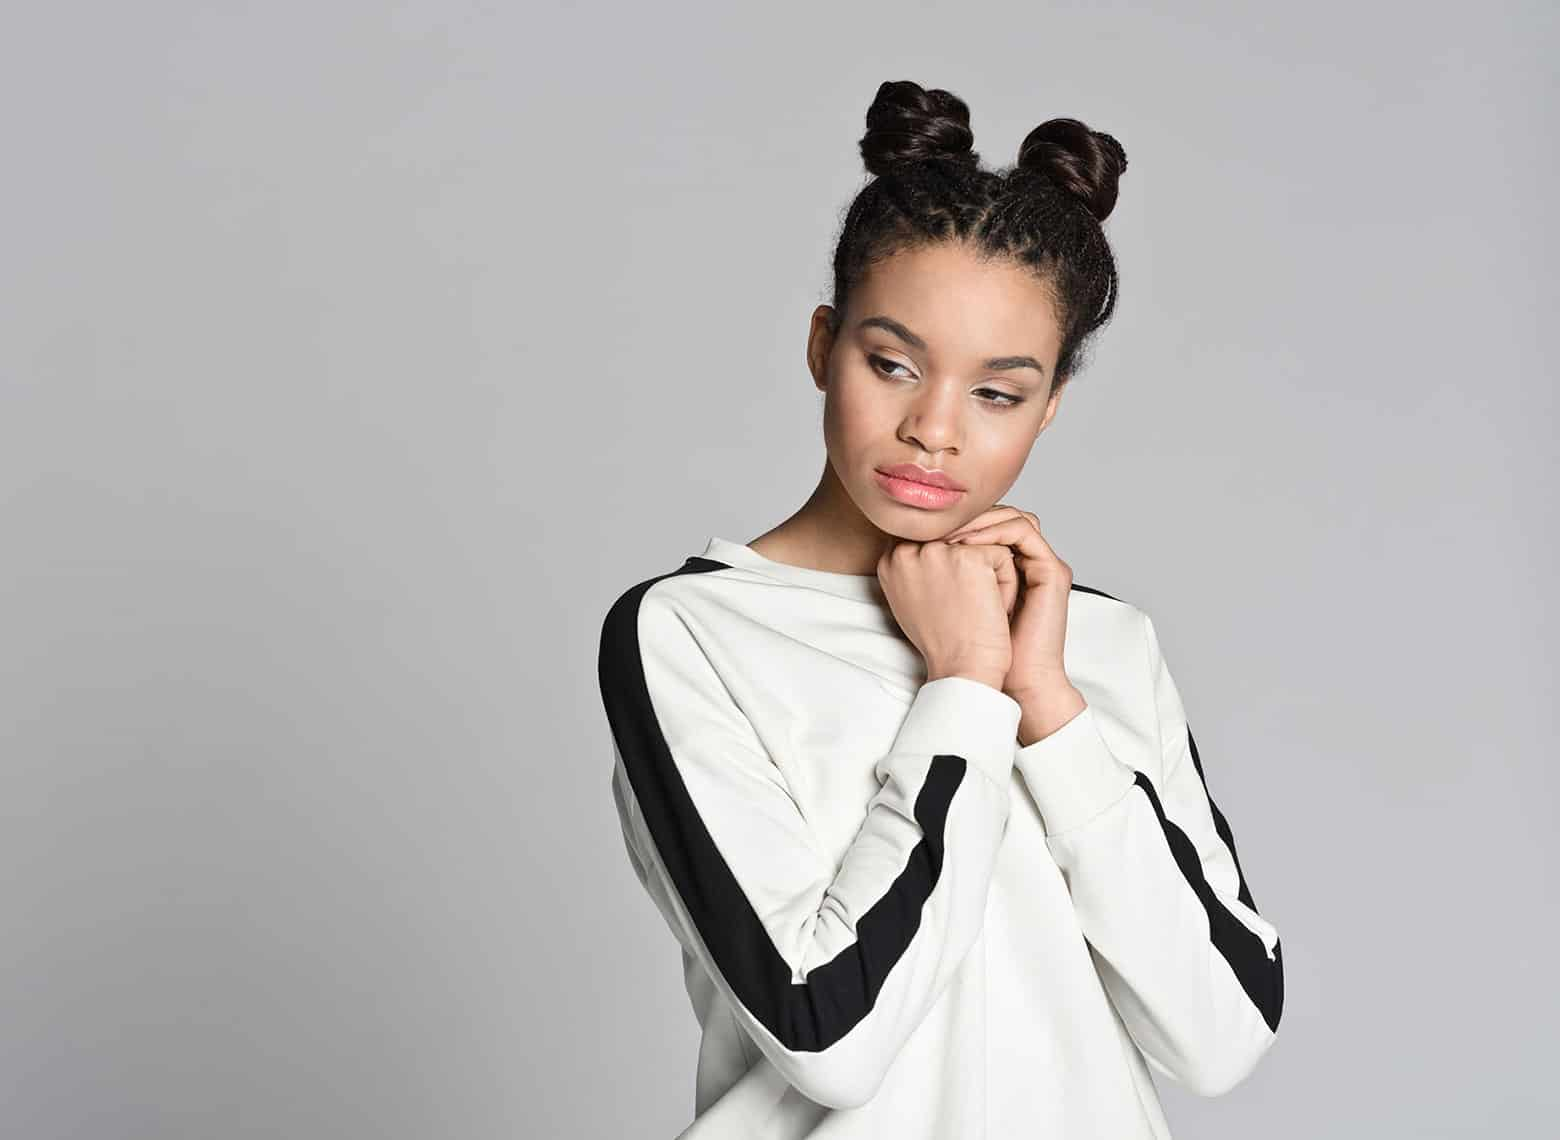 woman with double buns